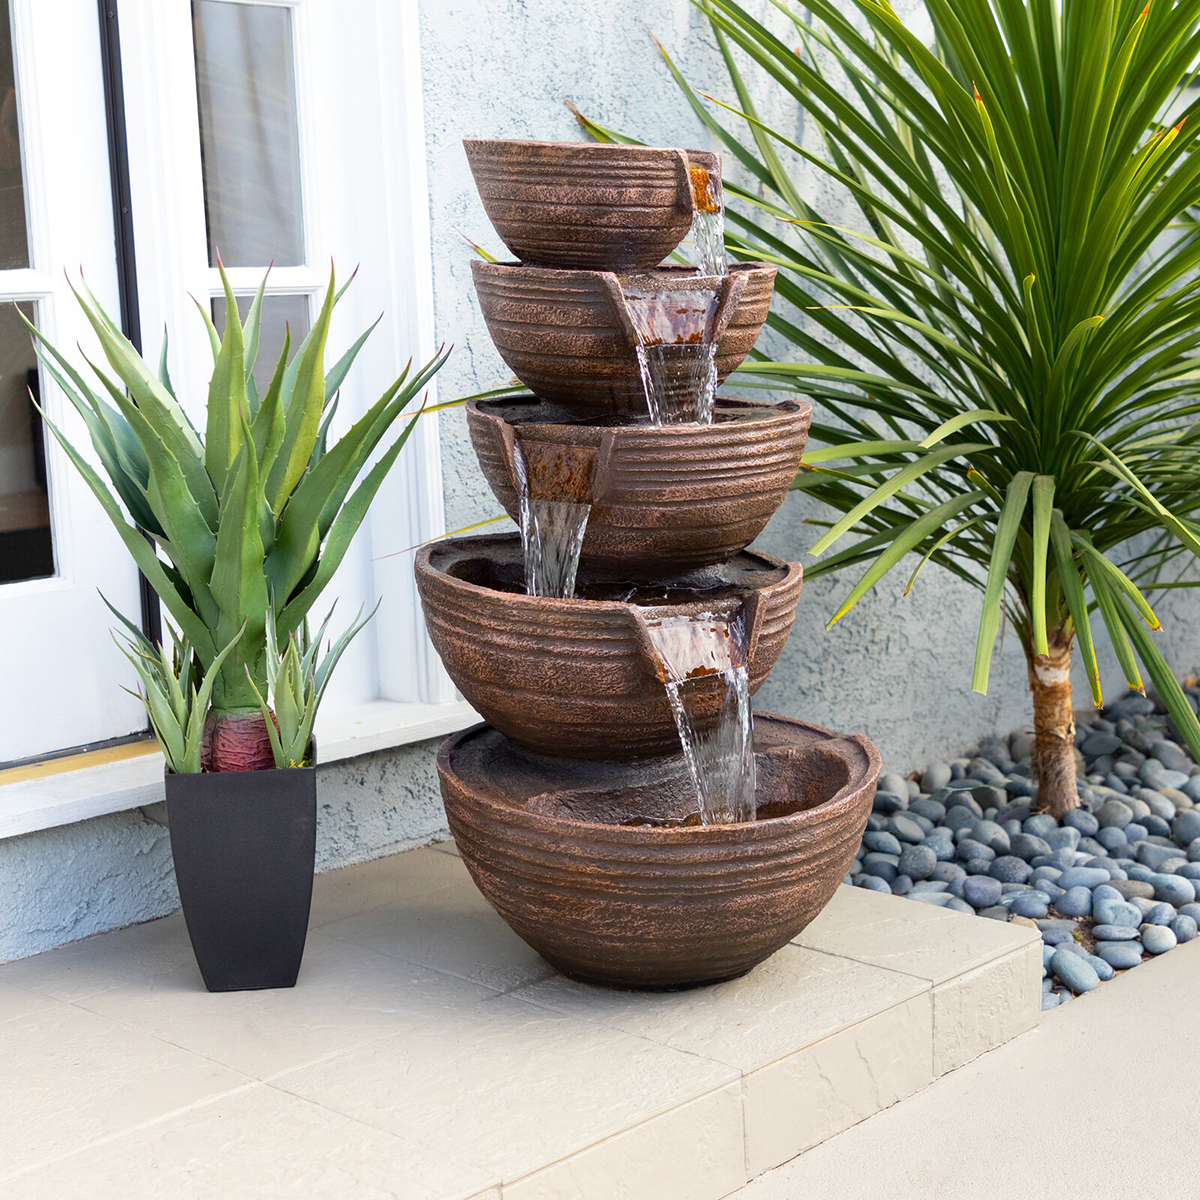 Rustic Tiered Waterfall Fountain with Lighting